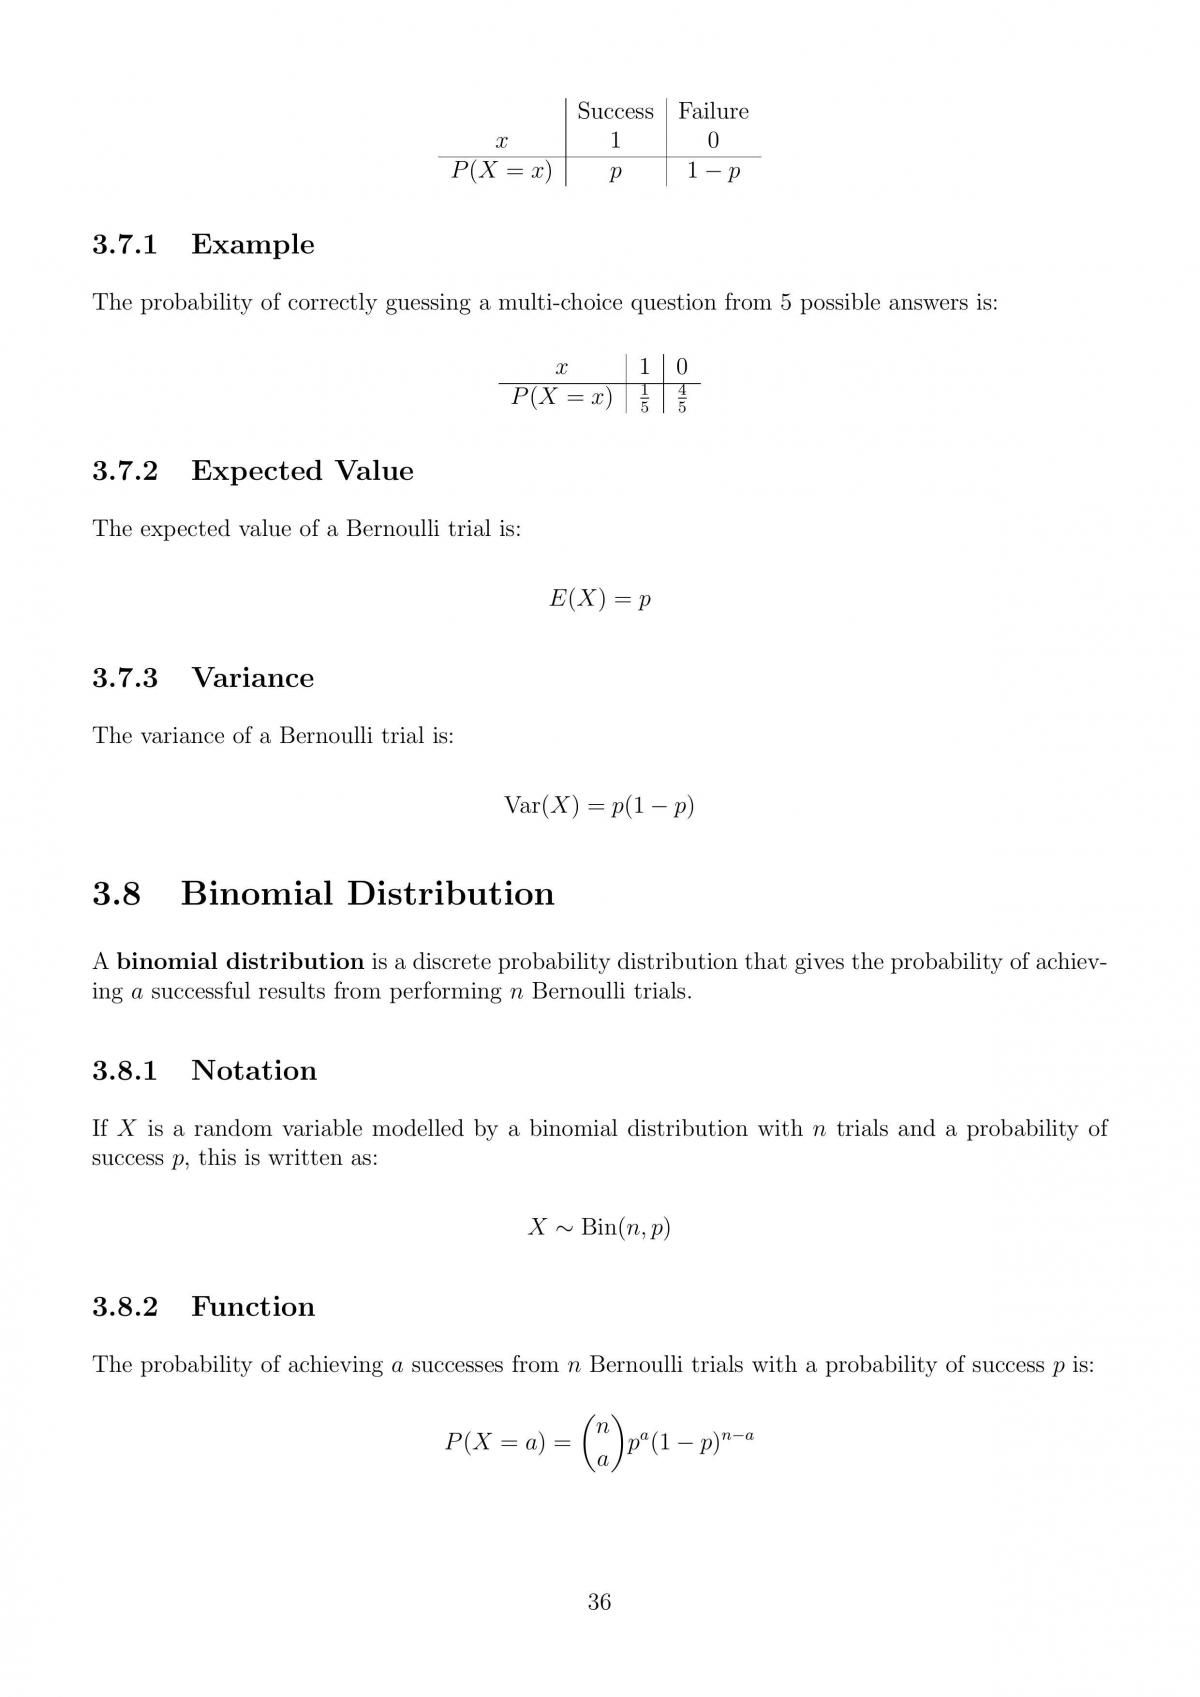 Mathematical Methods Comprehensive Notes - Page 36